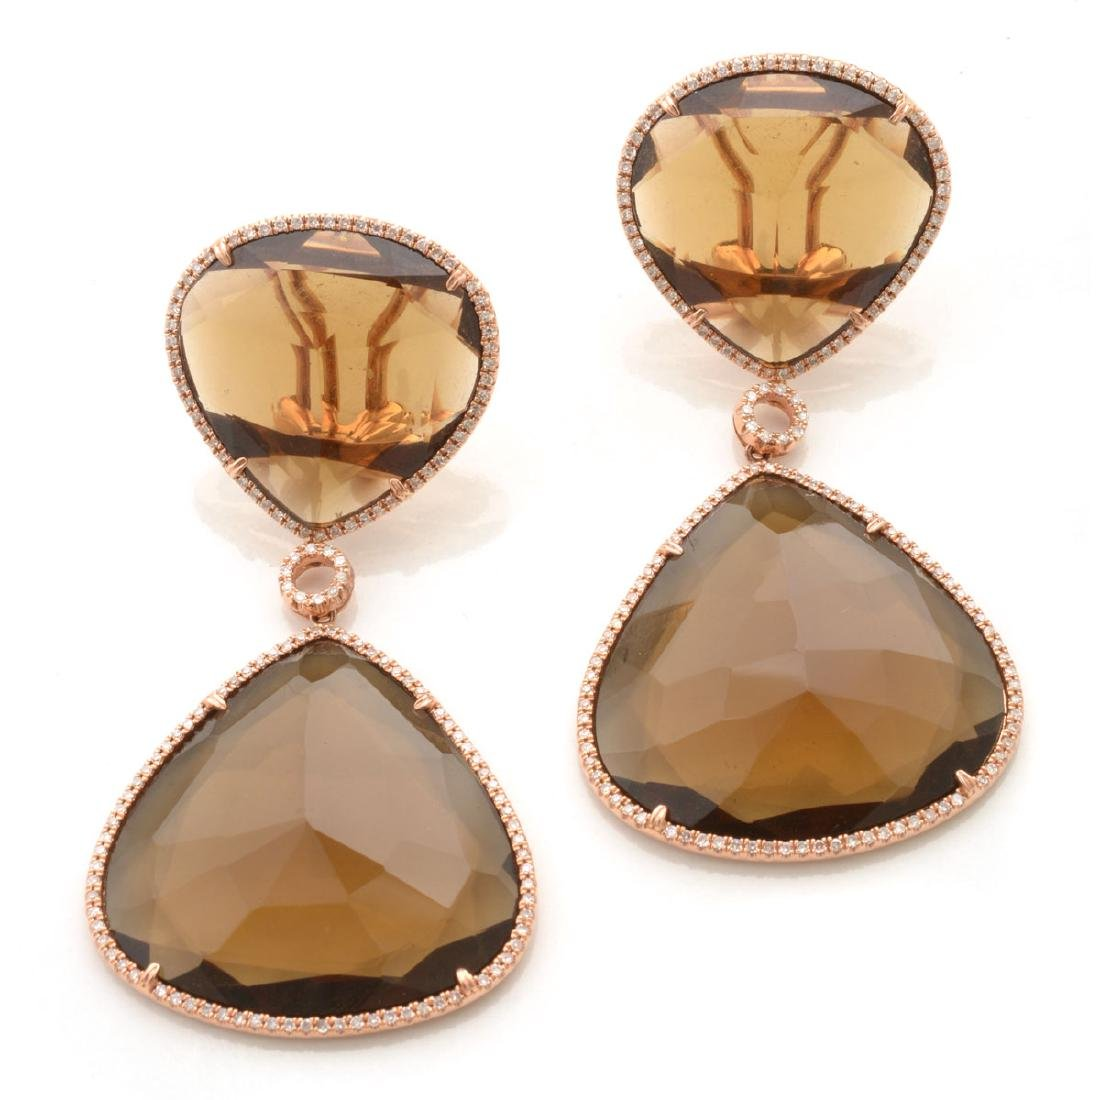 Pair of Smoky Quartz, Diamond, 14k Rose Gold Earrings.